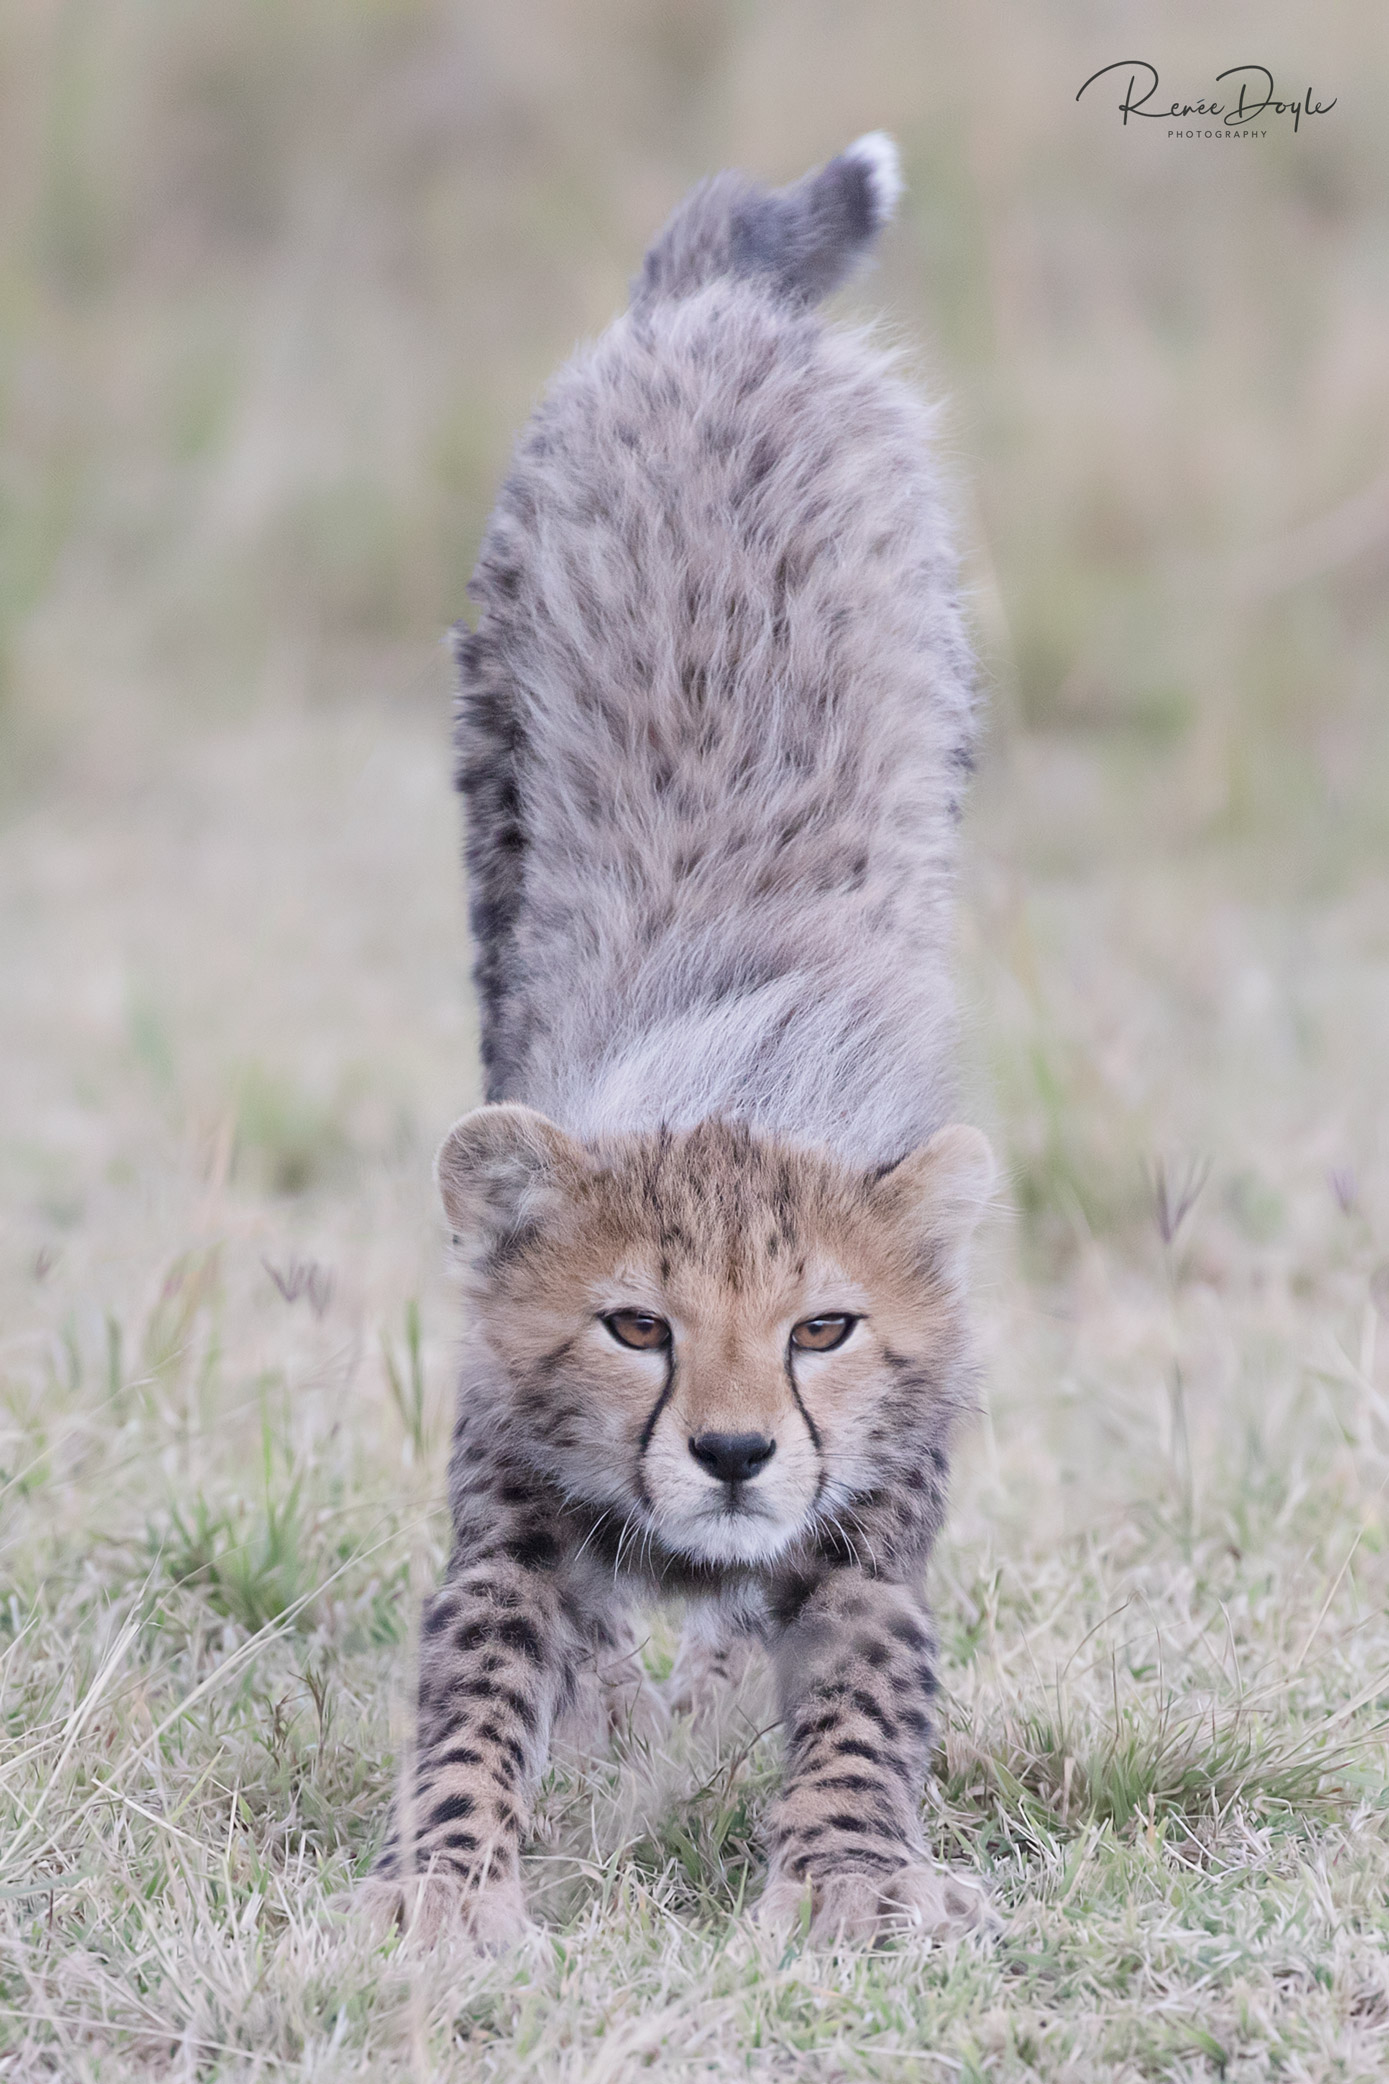 Cheetah Cub, Stretch, Cat, Africa, Kenya, Masai Mara, Renee Doyle Photography